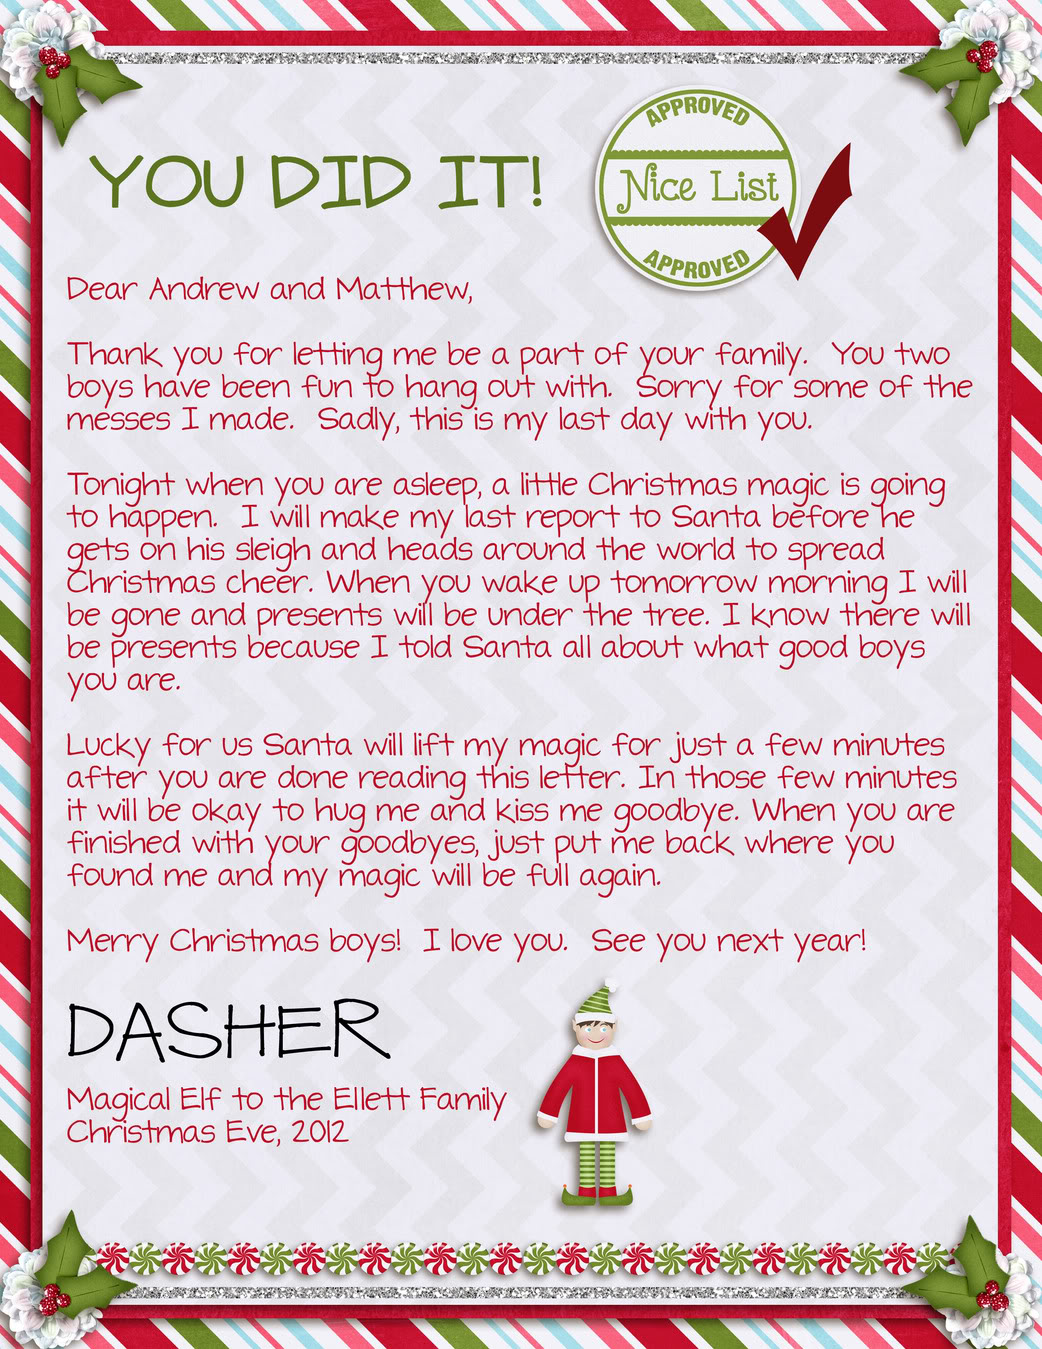 Elf on the Shelf Letters - Letters and other great ideas for your Elf ...